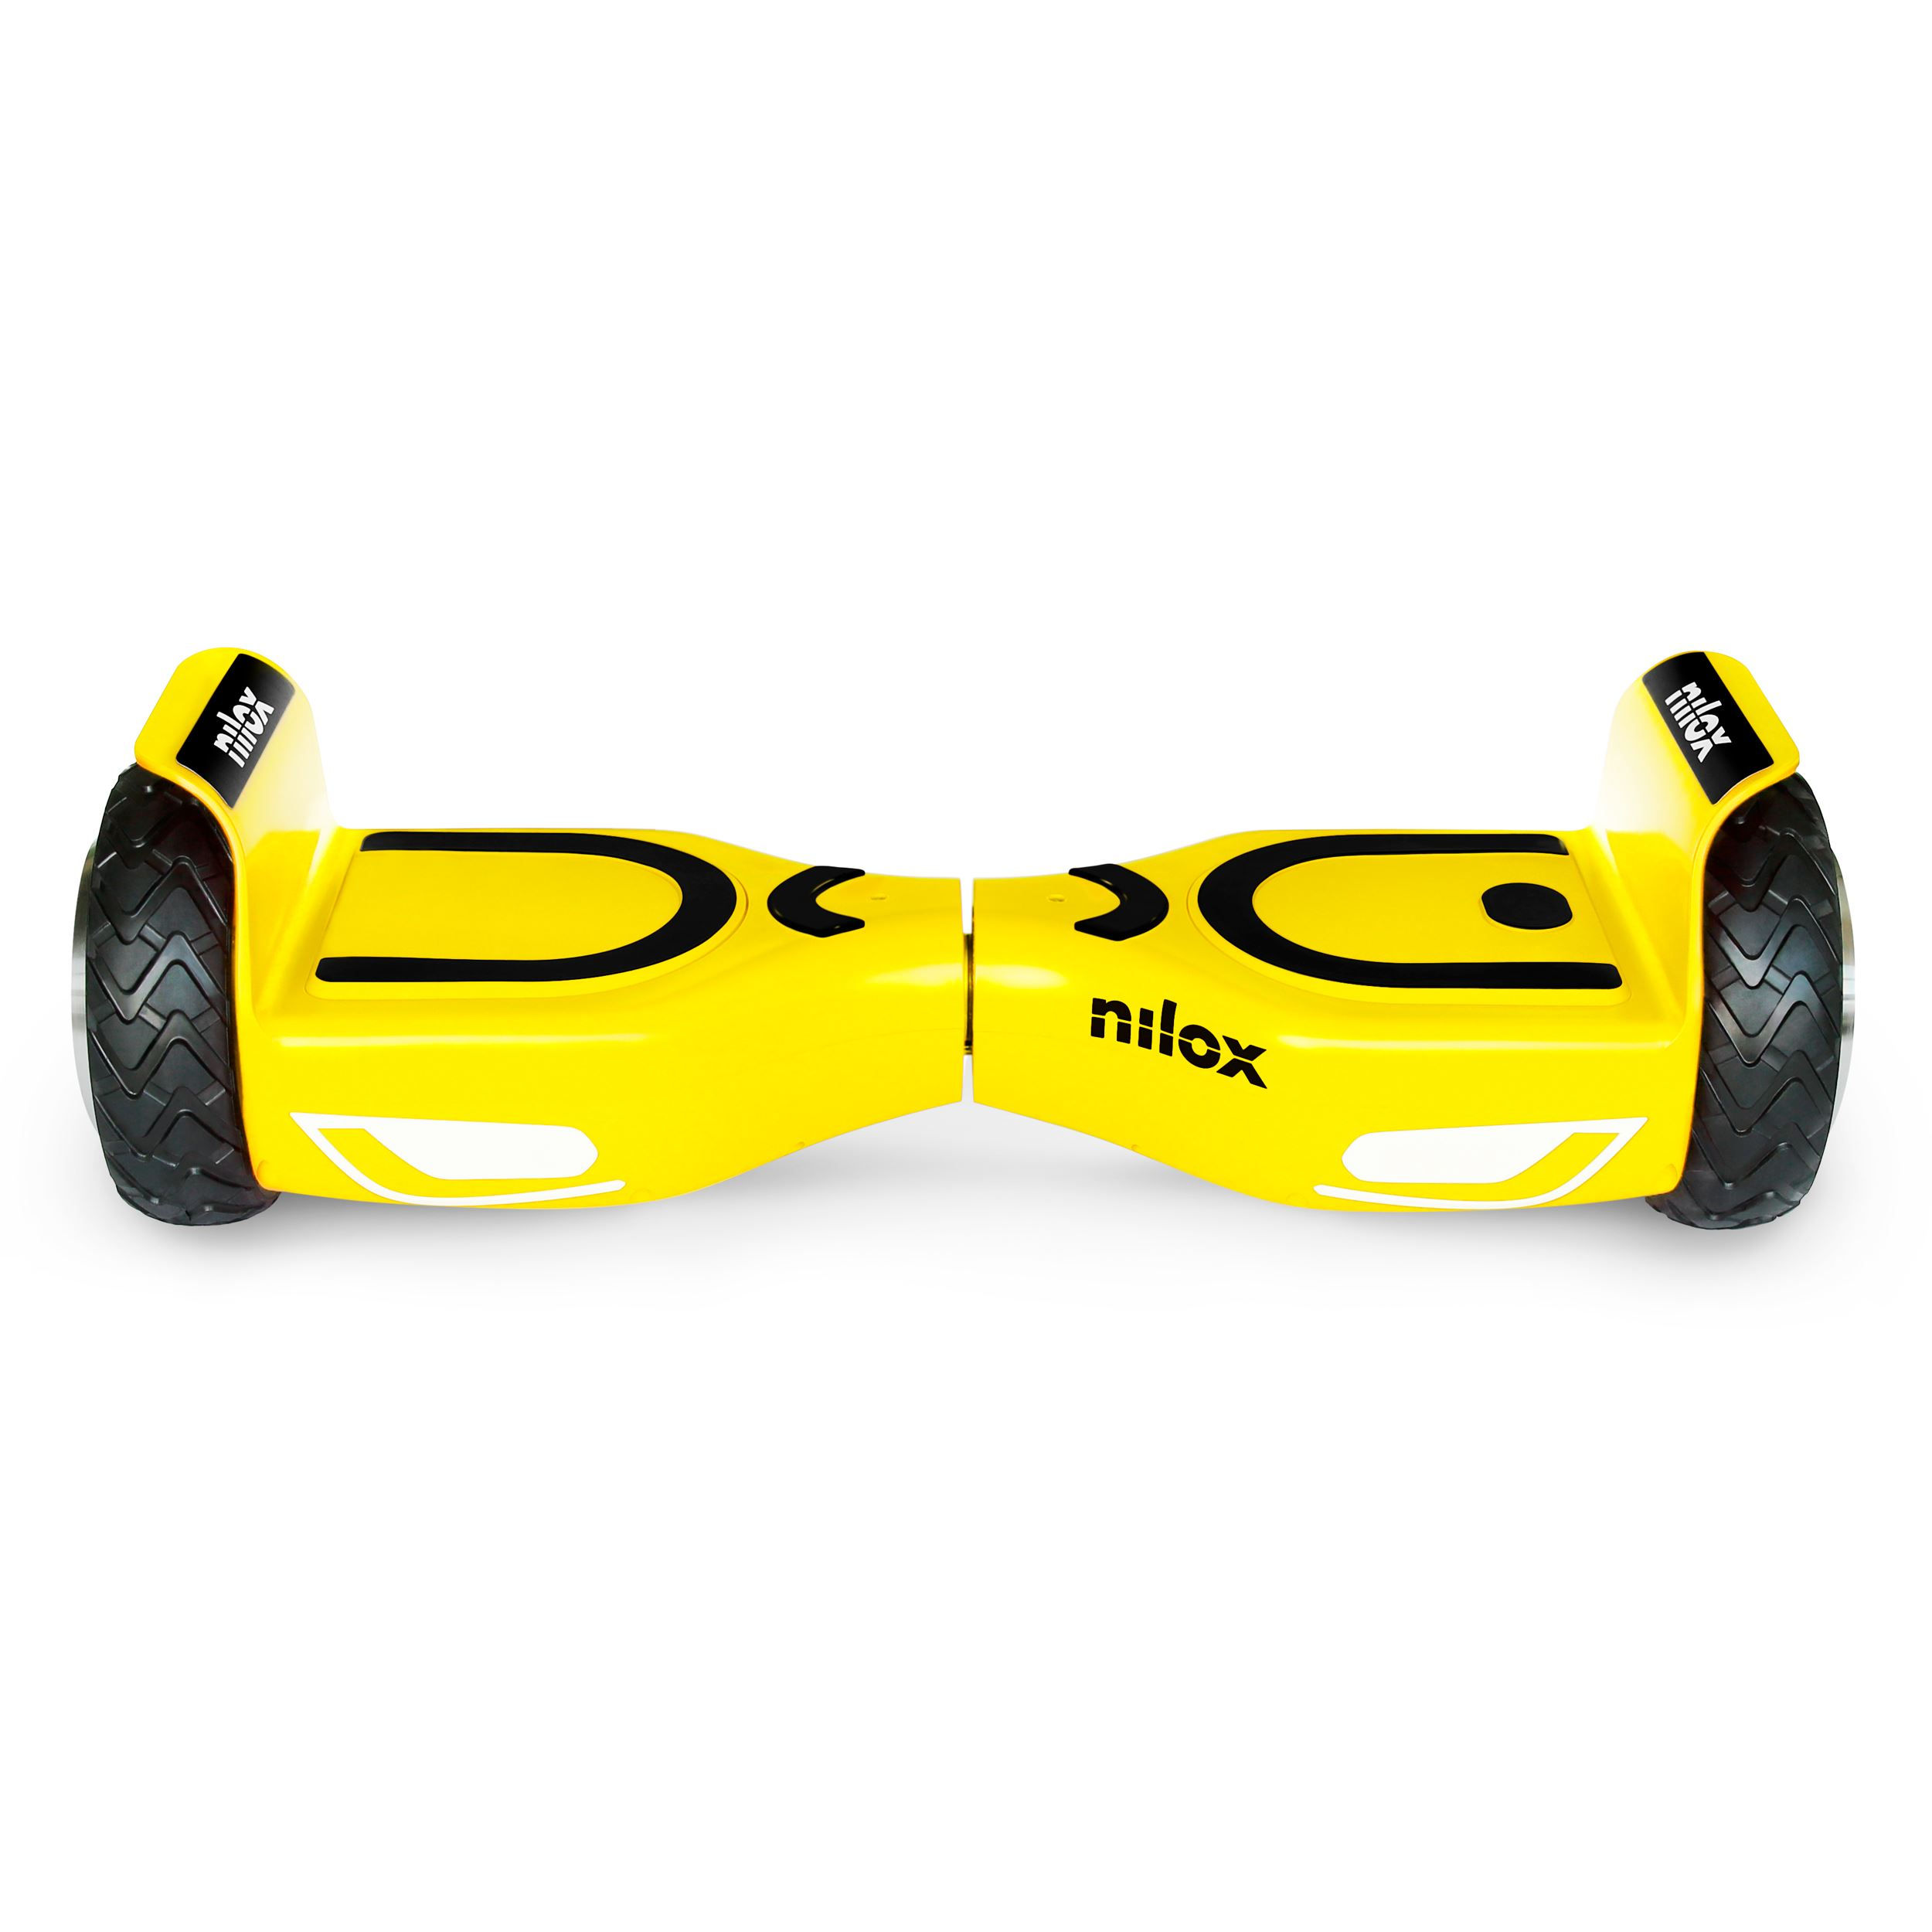 doc-2-hoverboard-yellow-30nxbk65nwn03-505144-hd.jpg